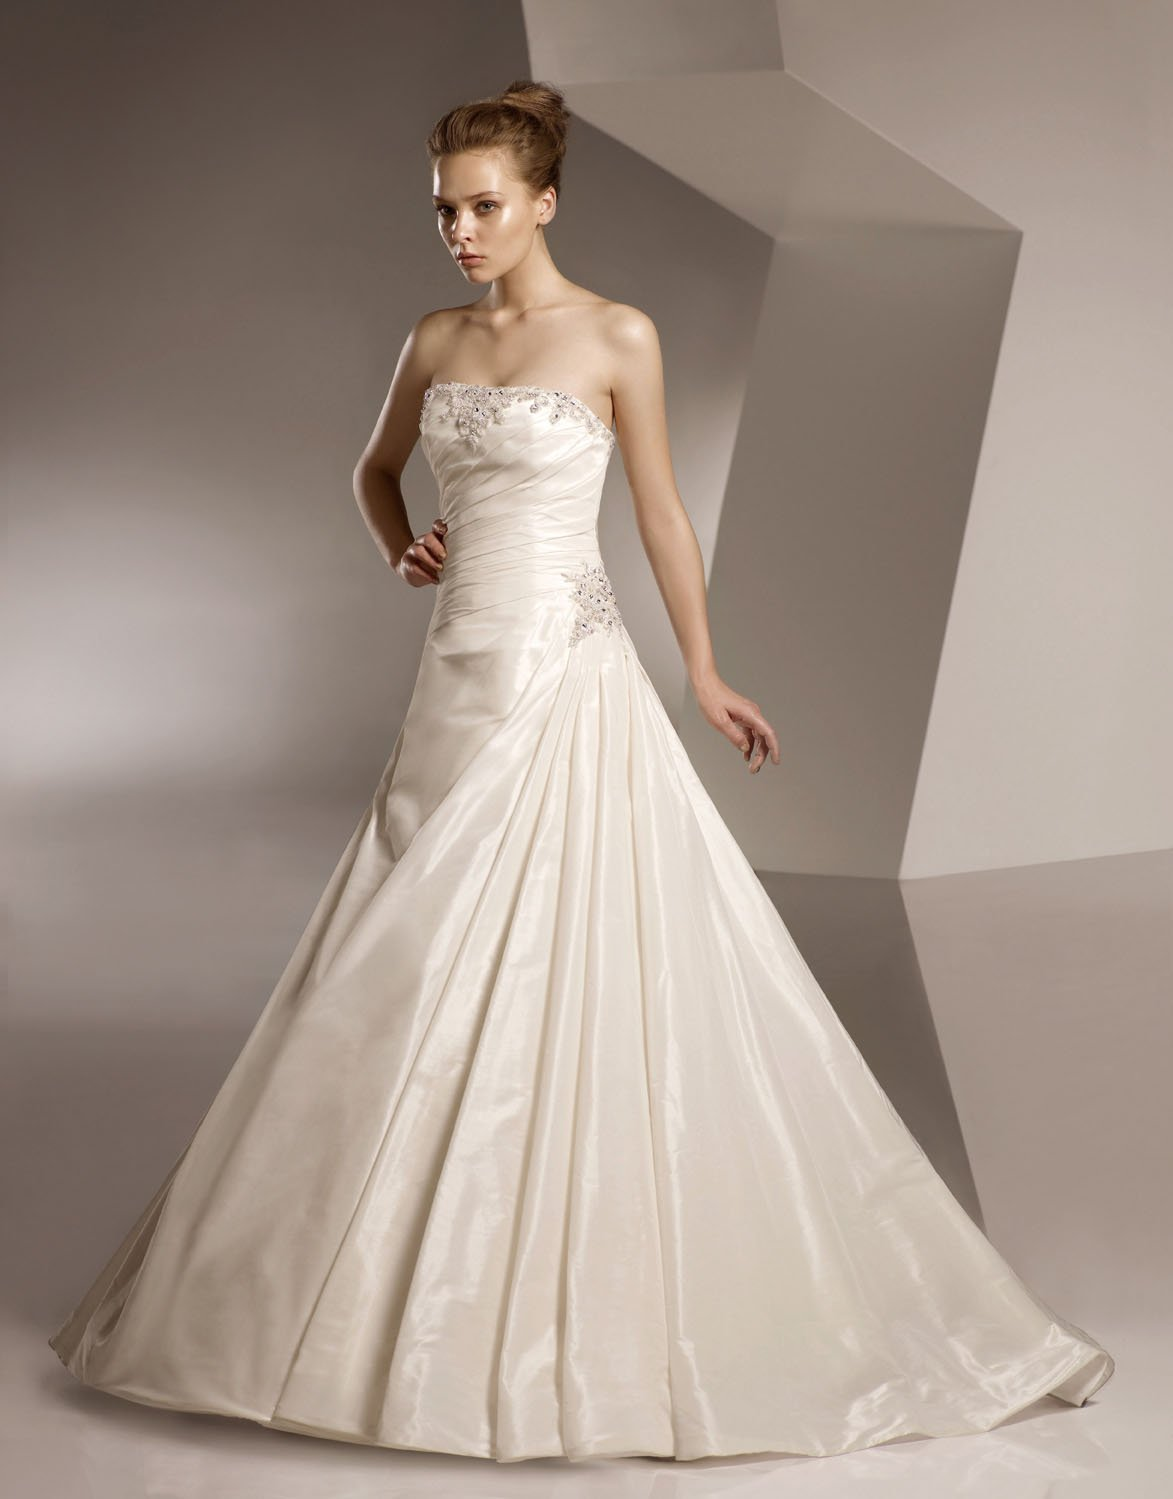 A-line Straight Neckline Appliqued Beading Wedding Dress Bridal Gown